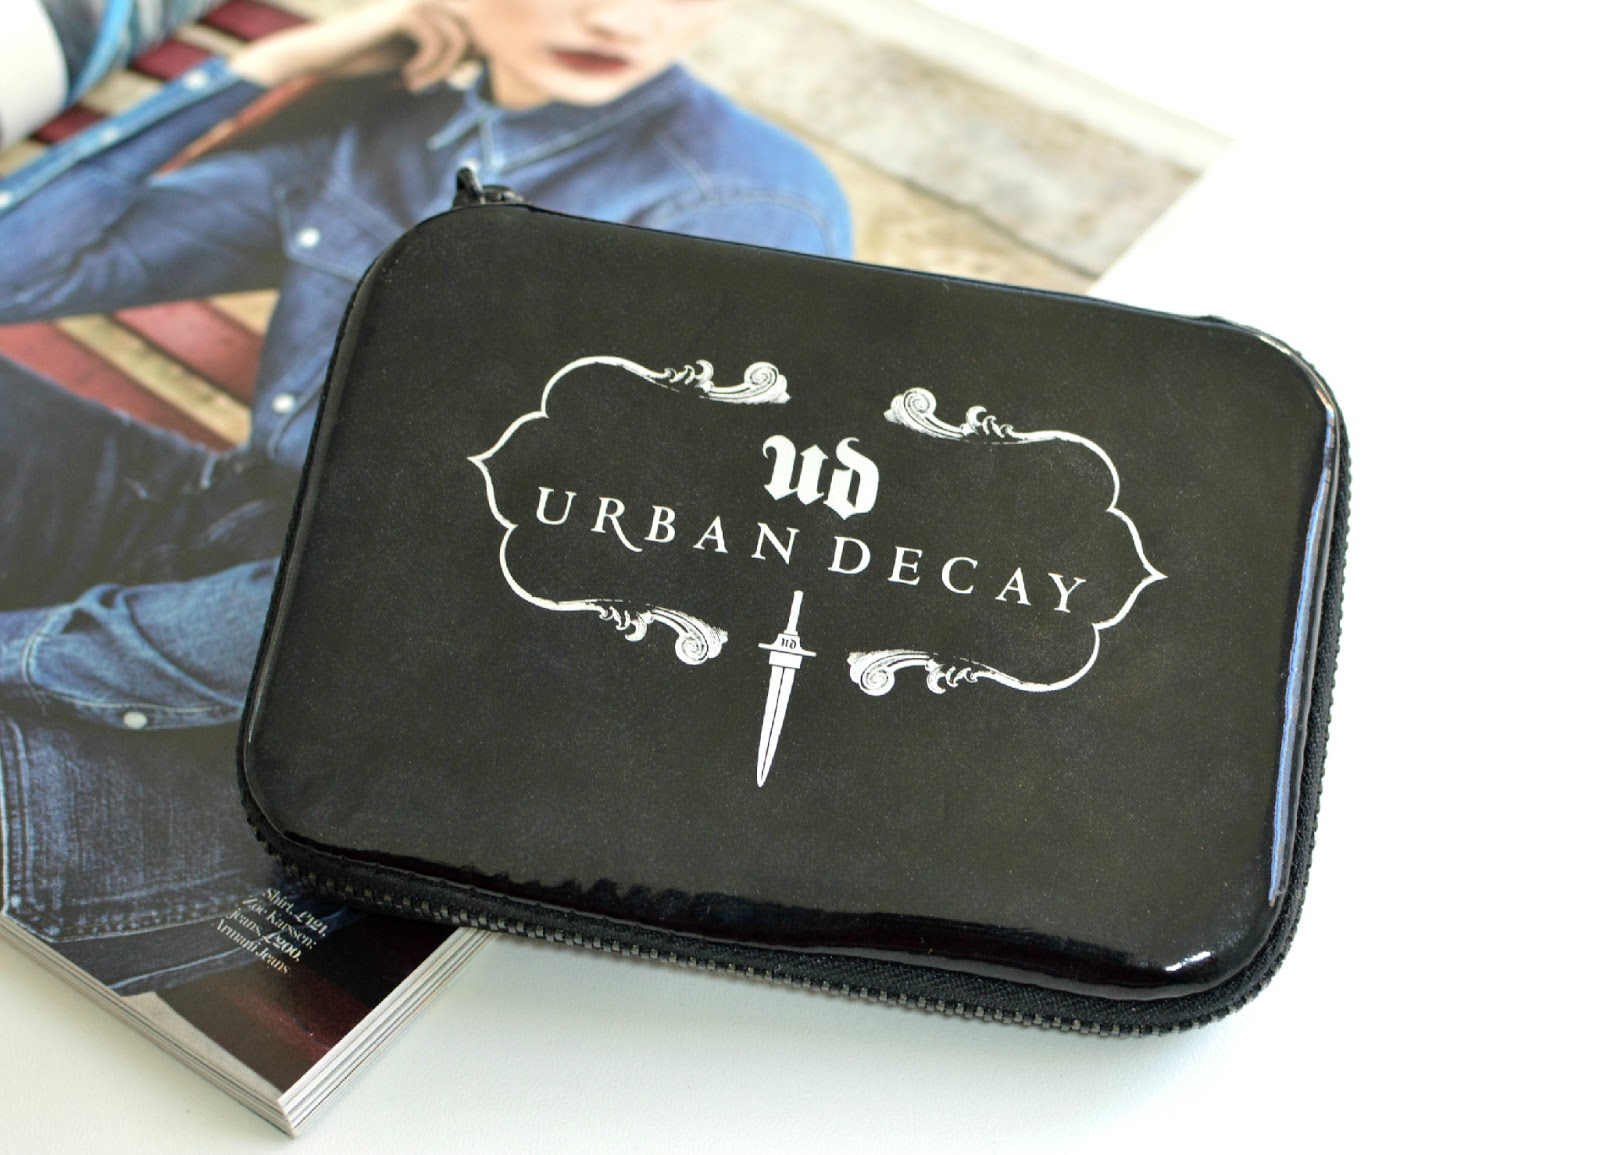 URBAN DECAY DANGEROUS PALETTE, URBAN DECAY DANGEROUS PALETTE REVIEW, URBAN DECAY DANGEROUS PALETTE SWATCH